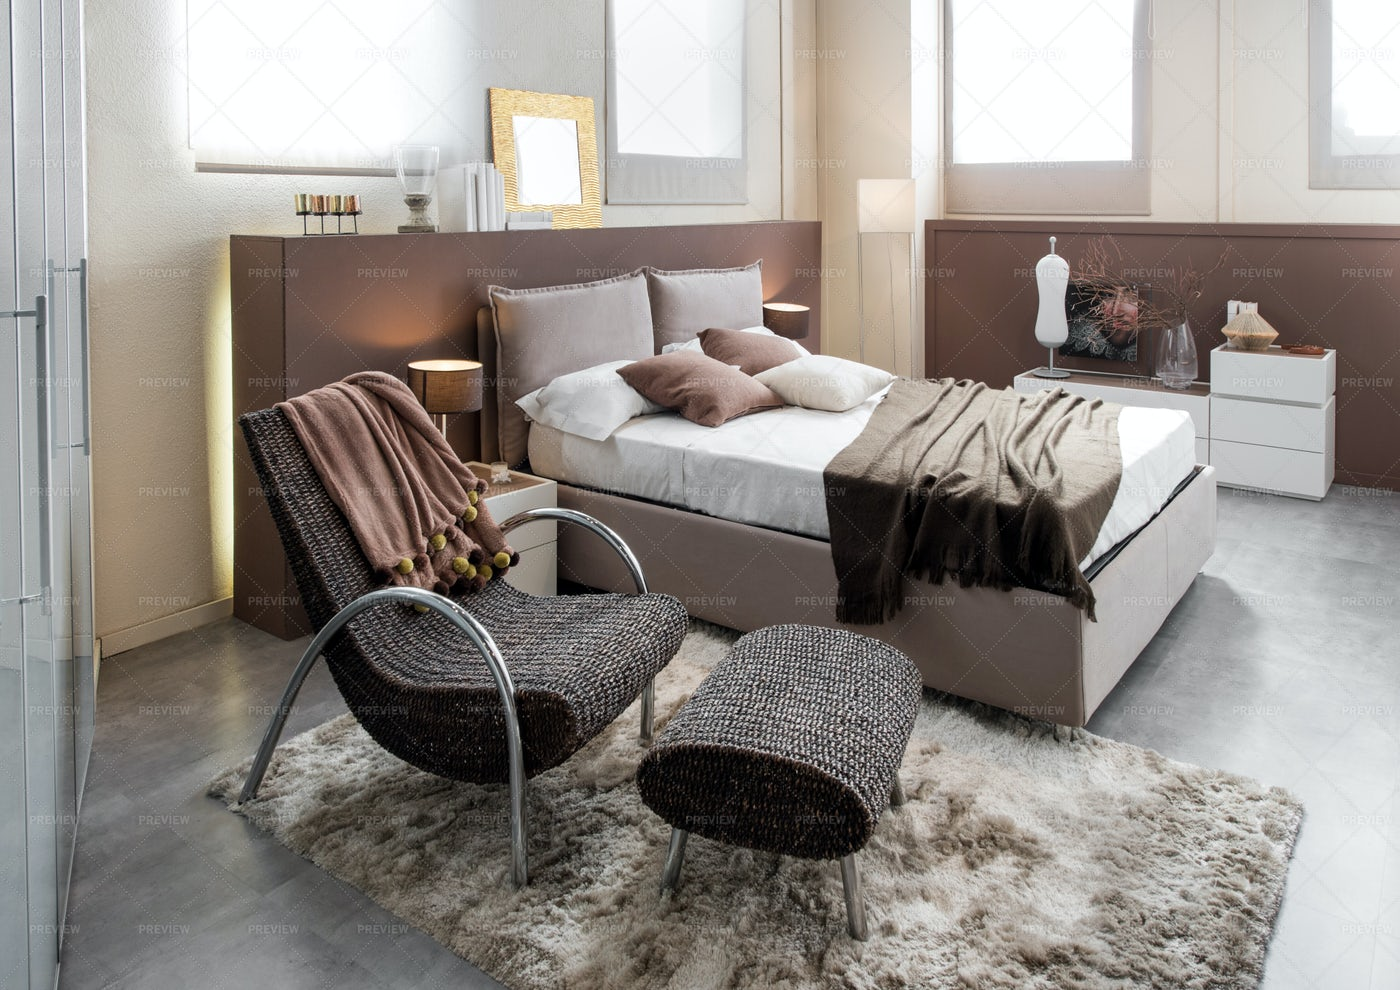 Luxury Bedroom With Recliner Chair: Stock Photos